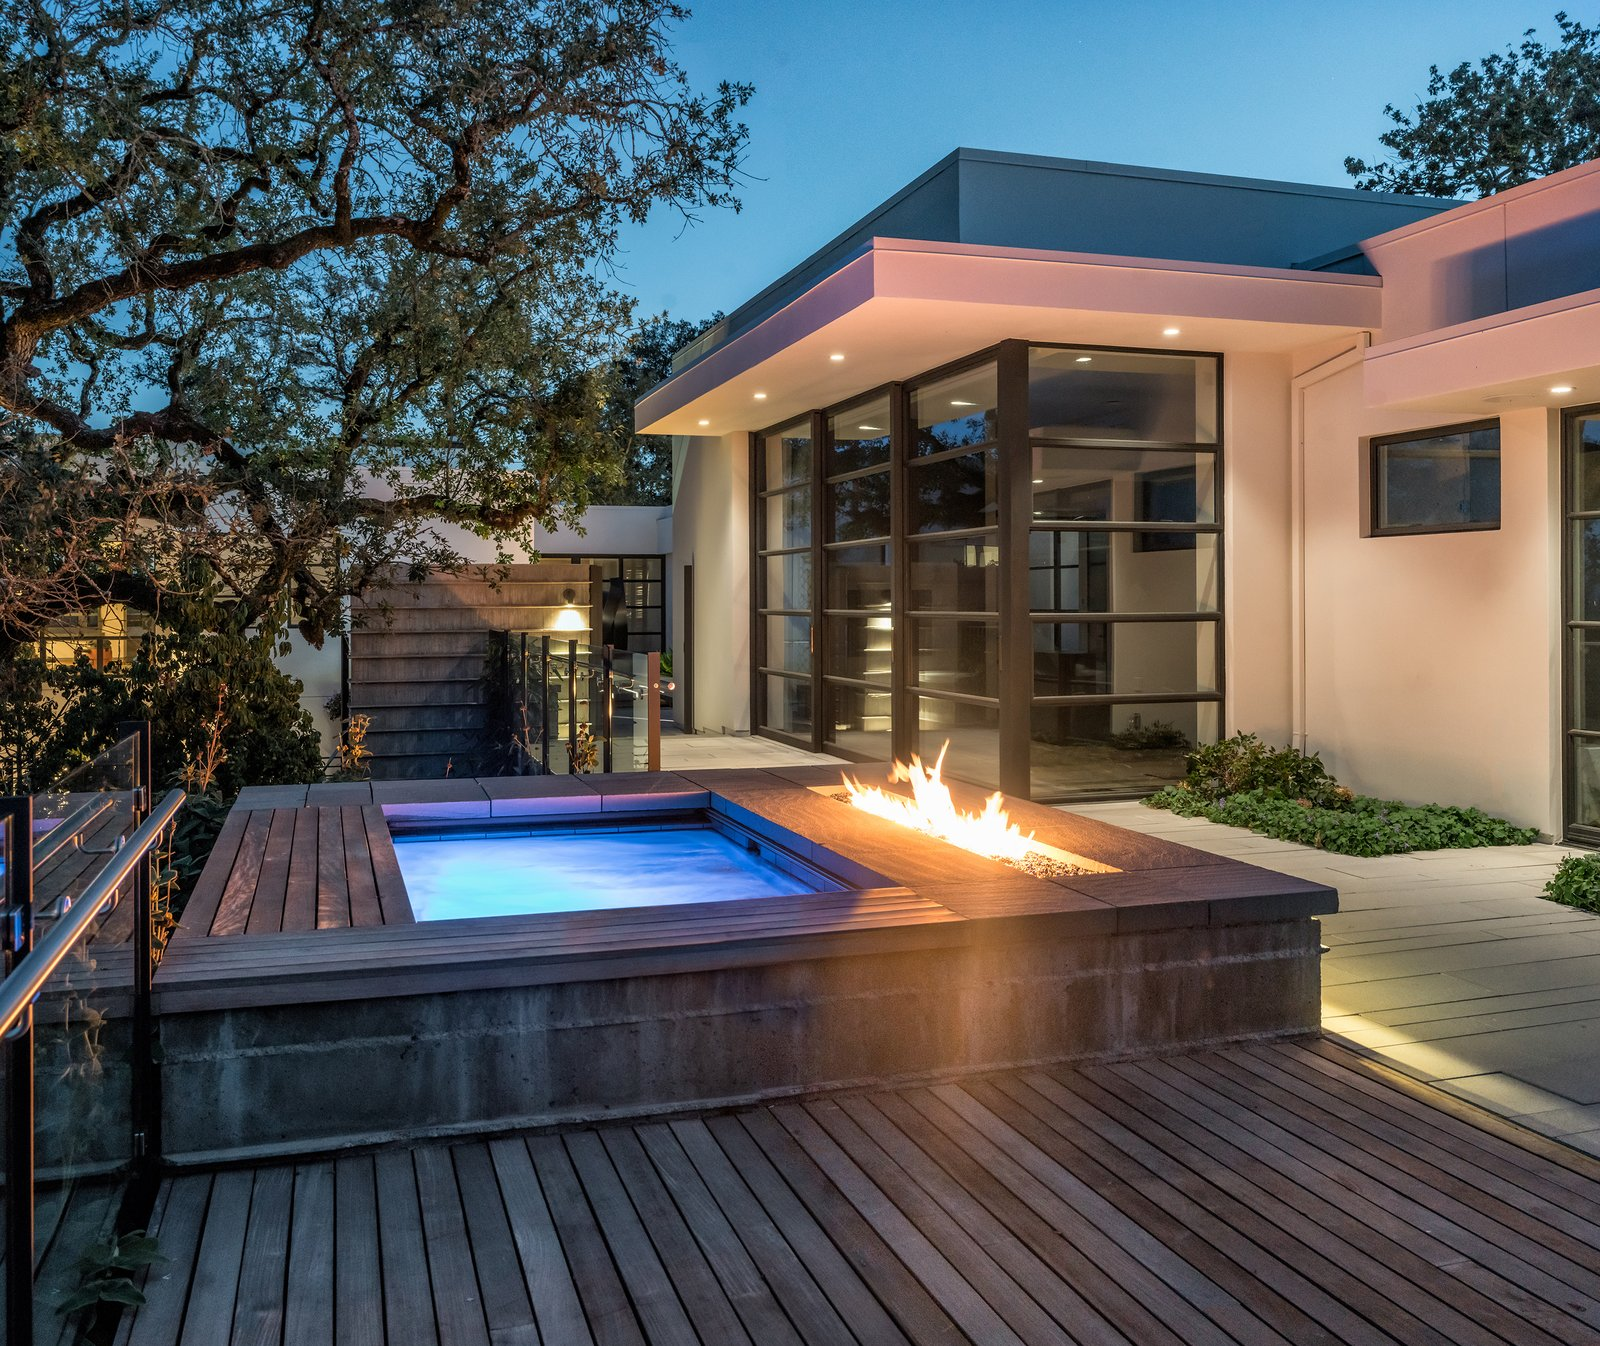 Outdoor, Wood Patio, Porch, Deck, Small Pools, Tubs, Shower, Concrete Patio, Porch, Deck, Trees, Shrubs, Small Patio, Porch, Deck, Hardscapes, Back Yard, and Landscape Lighting Lighted spa and fire feature at twilight  Hilltop Haven by Randy Thueme Design